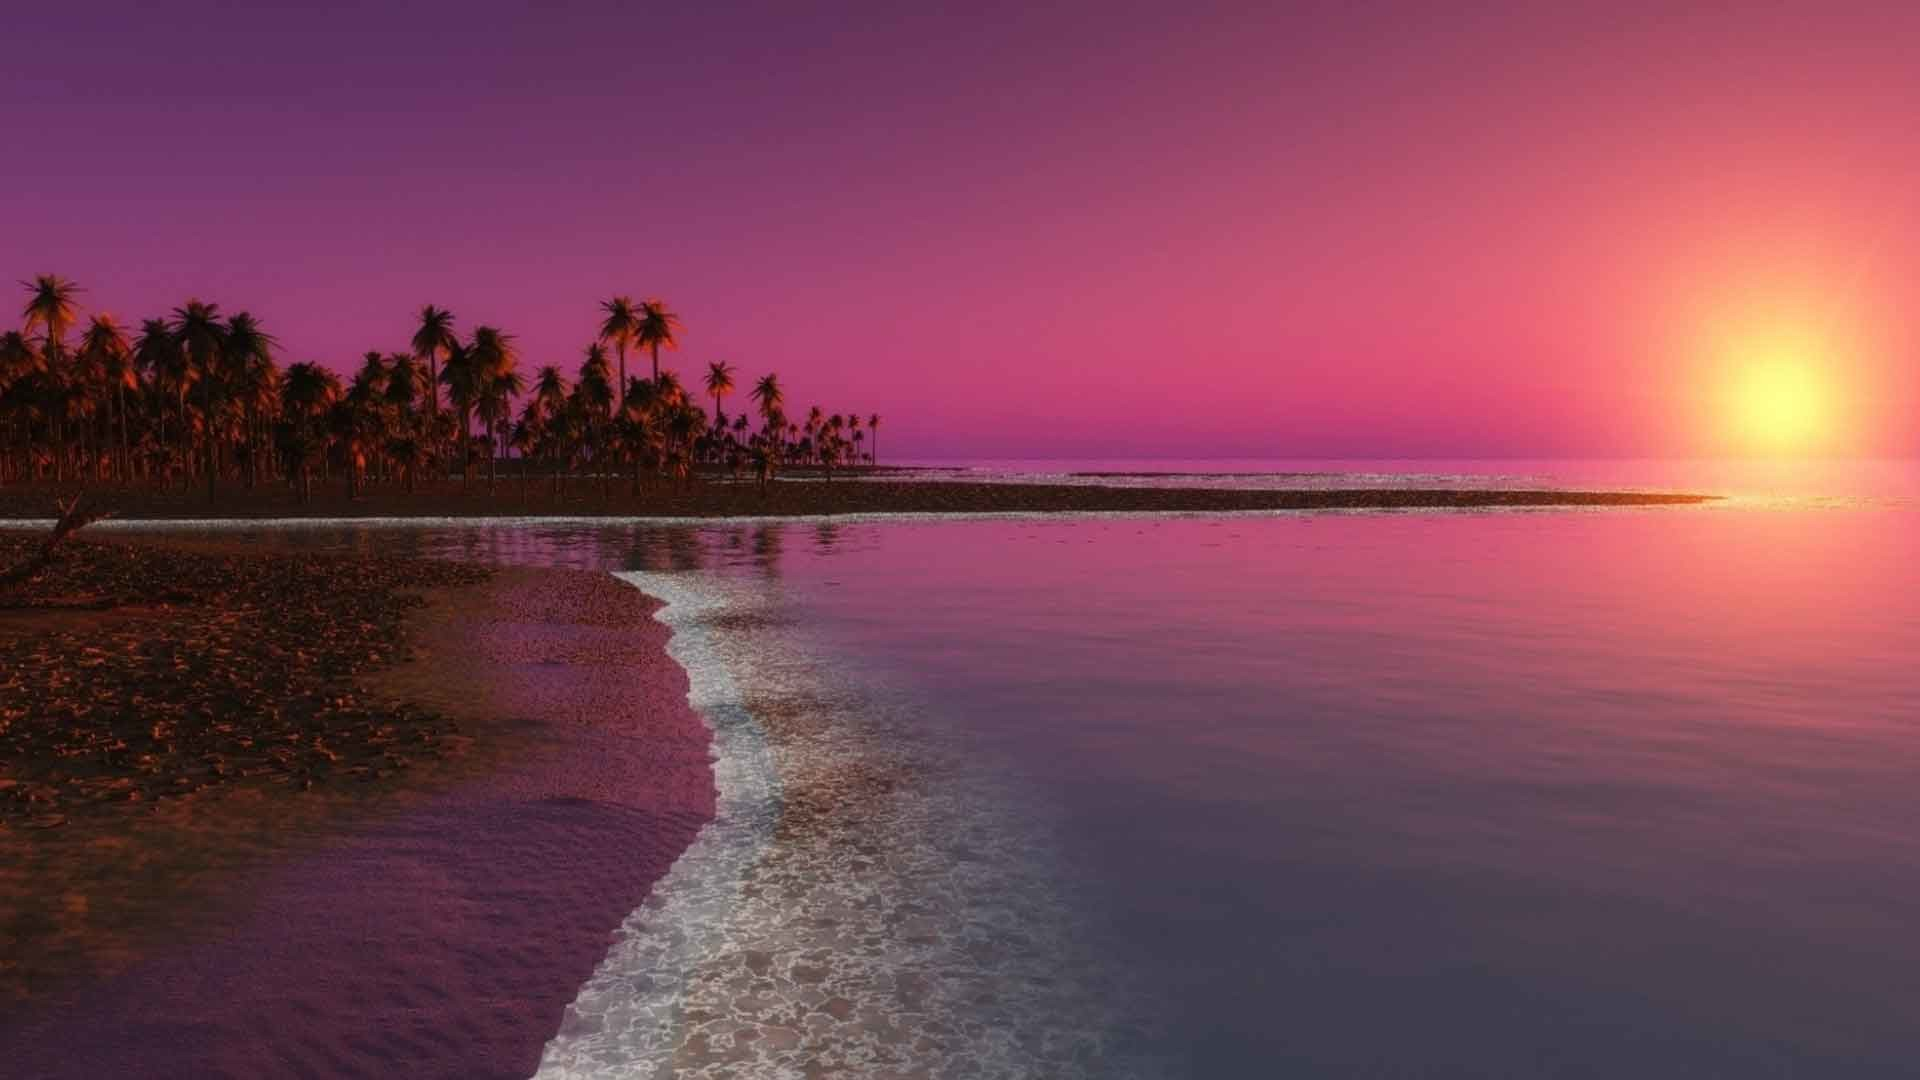 Sunrise Sunset Ocean Reflection Water Beach HD Wallpapers 1080p Widescreen  Nature Free Download